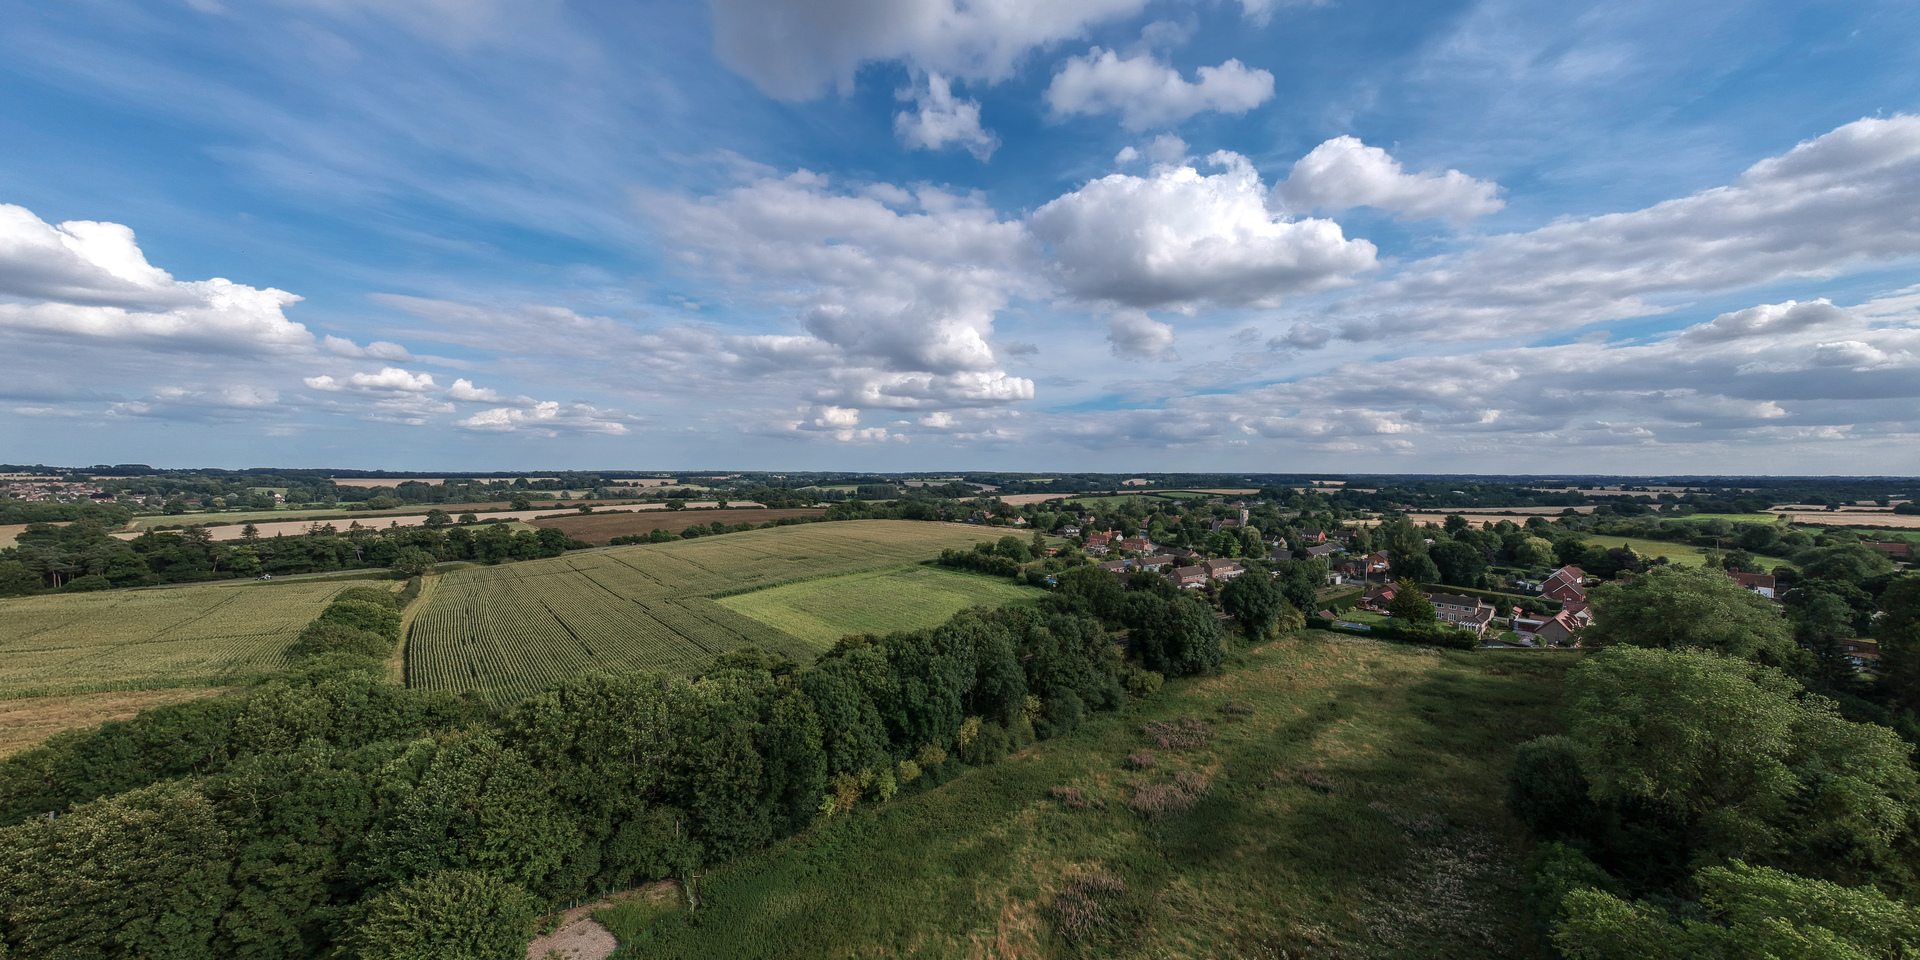 Pages 2017 08 06 at 17 06 49  dji 0001 2 pano    www.josephcaseyphotography.com